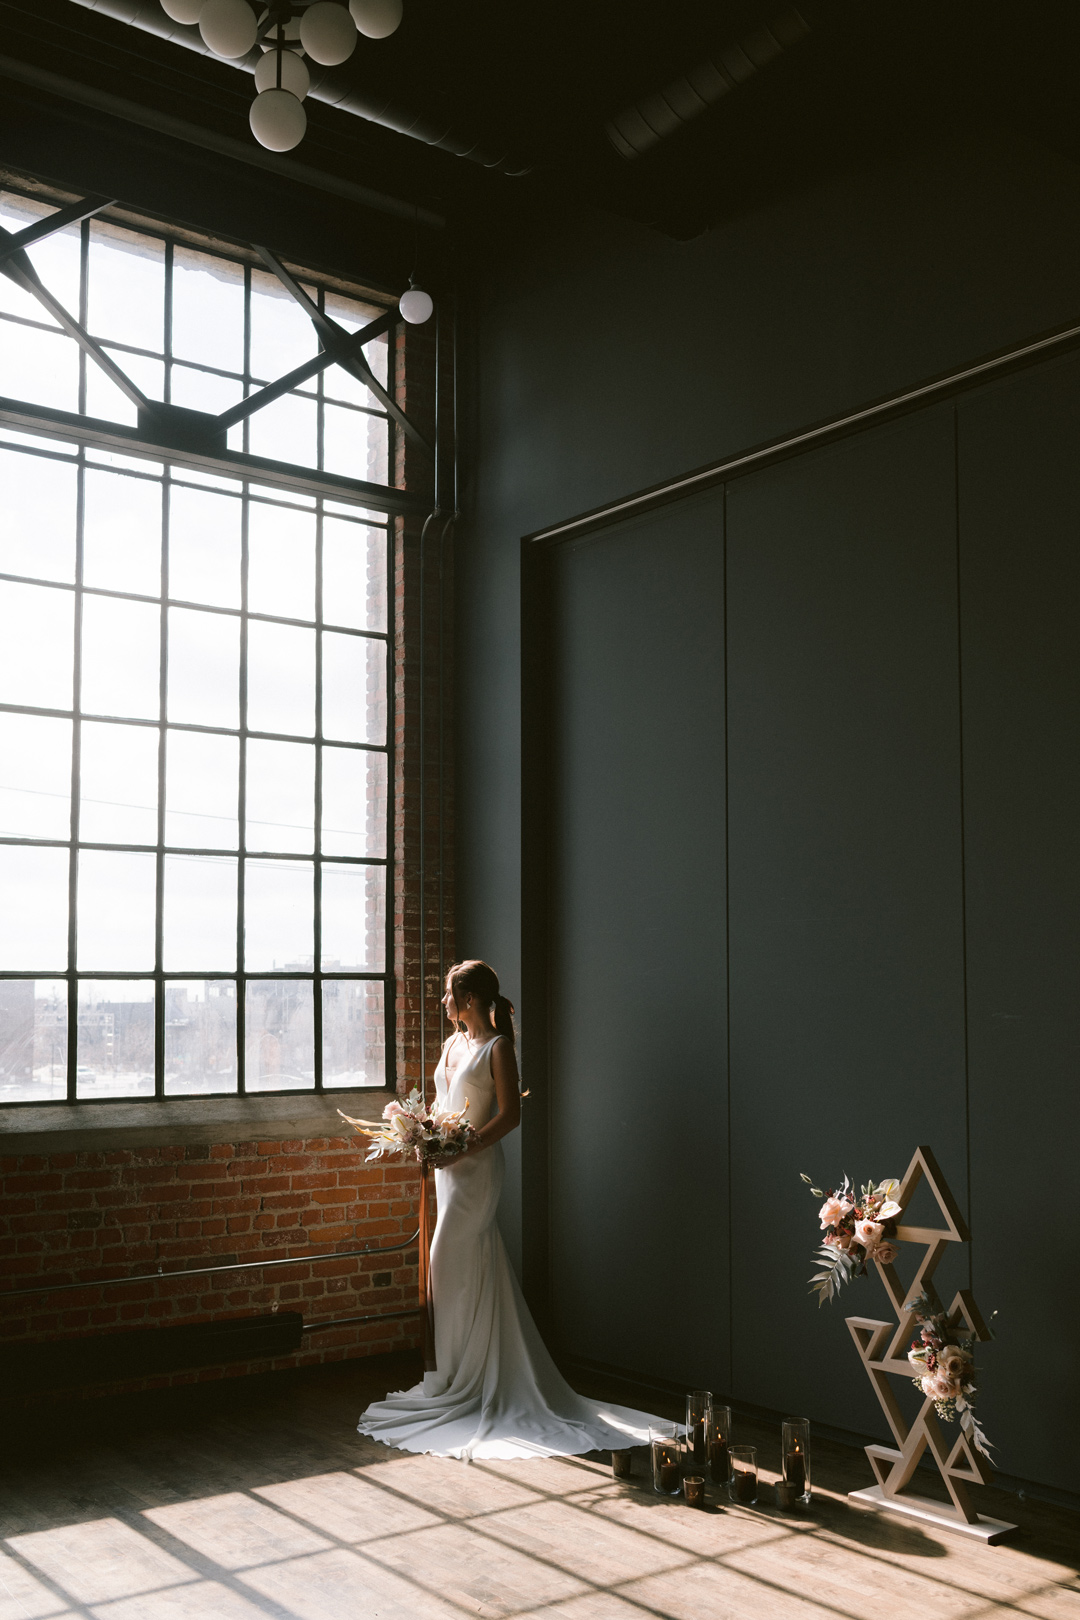 Bride standing by the window in a New York-style loft